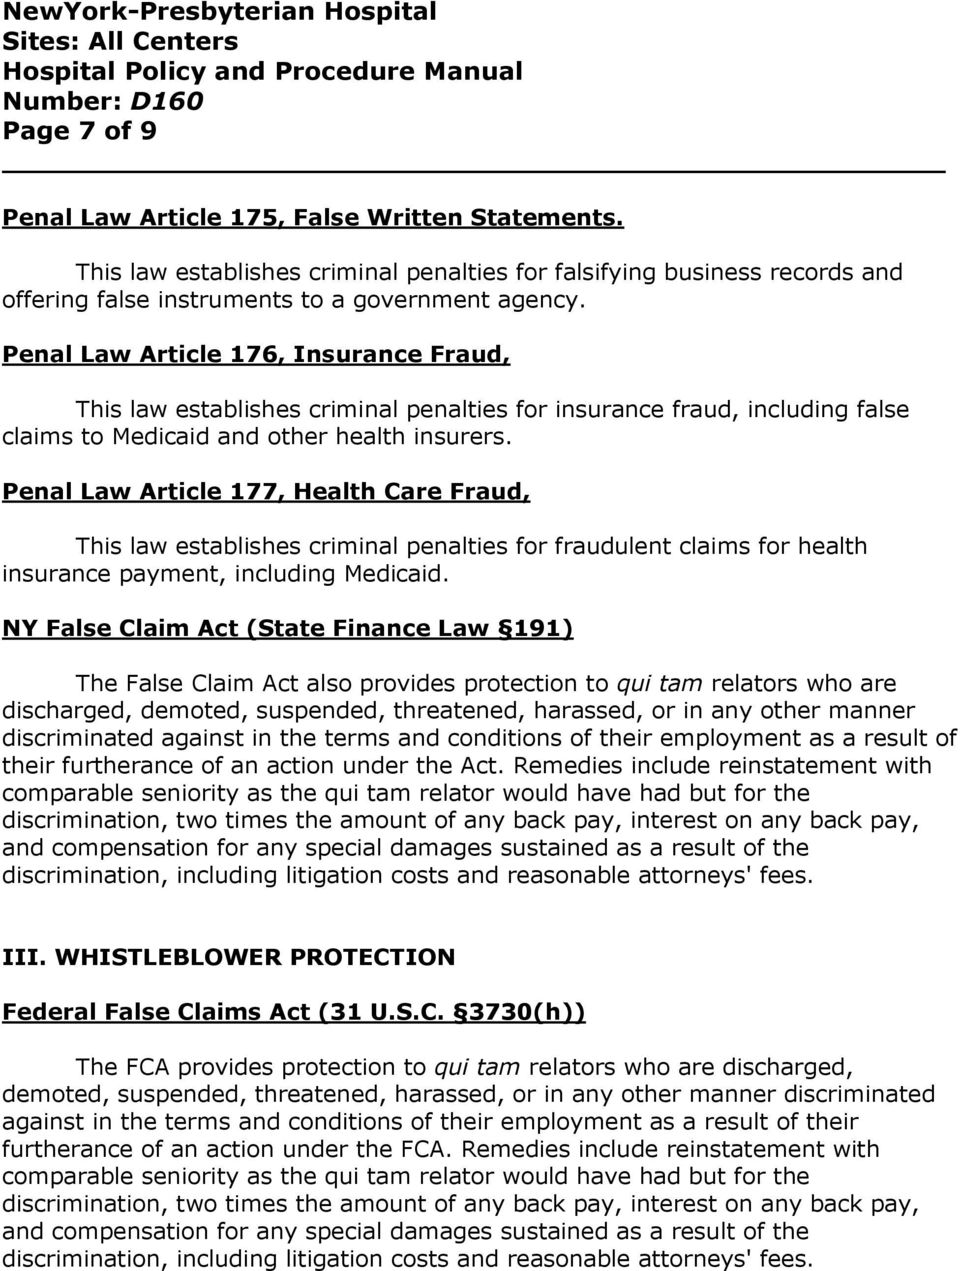 Penal Law Article 177, Health Care Fraud, This law establishes criminal penalties for fraudulent claims for health insurance payment, including Medicaid.